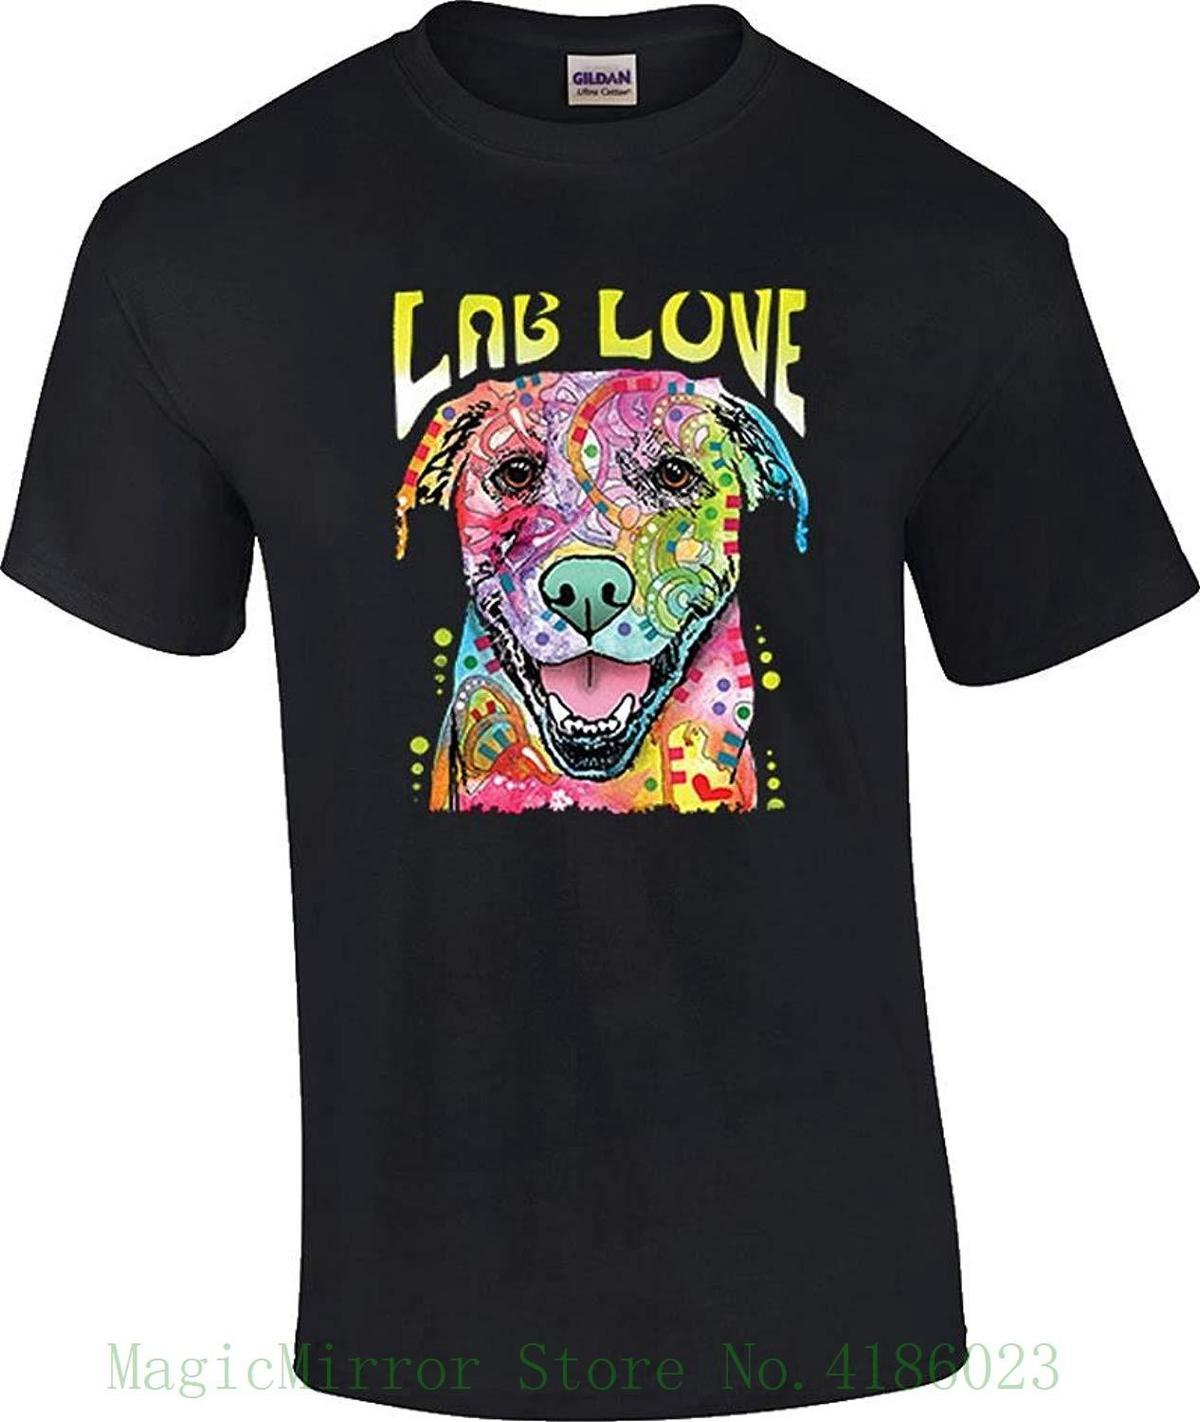 d417fbc8a65e Men S Chocolate Yellow Black Lab Love Dog T Shirt Good Quality Brand Cotton  Shirt Summer Style Cool Shirts Coolest T Shirt Shirts With Designs From  Jie11